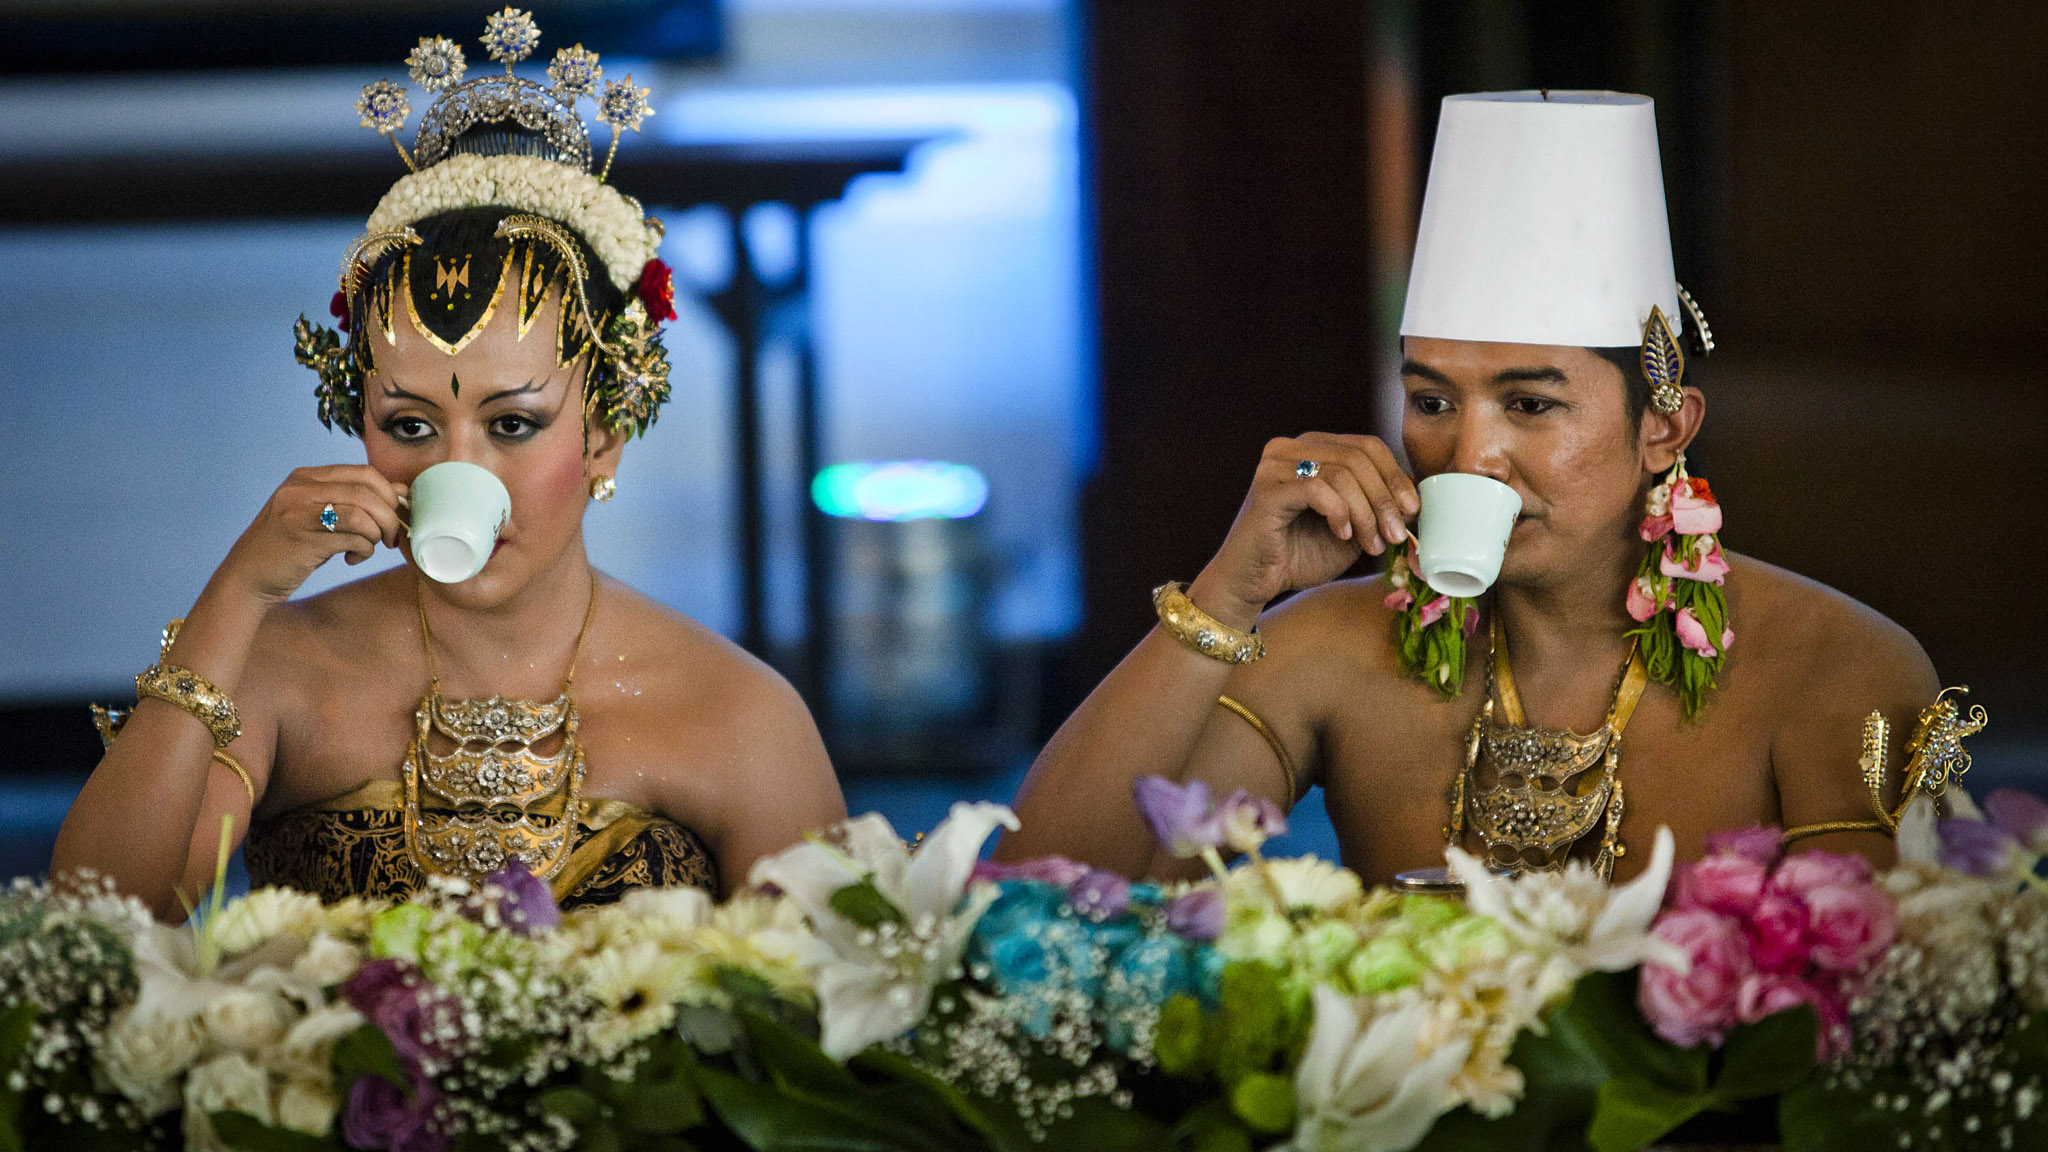 YOGYAKARTA, INDONESIA - OCTOBER 22:  KPH Notonegoro and Gusti Kanjeng Ratu Hayu drink tea during Dahar Klimah ceremony in Bangsal Kesatriyan at Kraton Palace as part of the Royal Wedding Held For Sultan Hamengkubuwono X's Daughter Gusti Ratu Kanjeng Hayu And KPH Notonegoro on October 22, 2013 in Yogyakarta, Indonesia.  Wedding celebrations will take place October 21-23 October. The wedding parade will include 12 royal horse drawn carriages and will be streamed live on the internet so that it can be watched by people all over the world.  (Photo by Ulet Ifansasti/Getty Images)